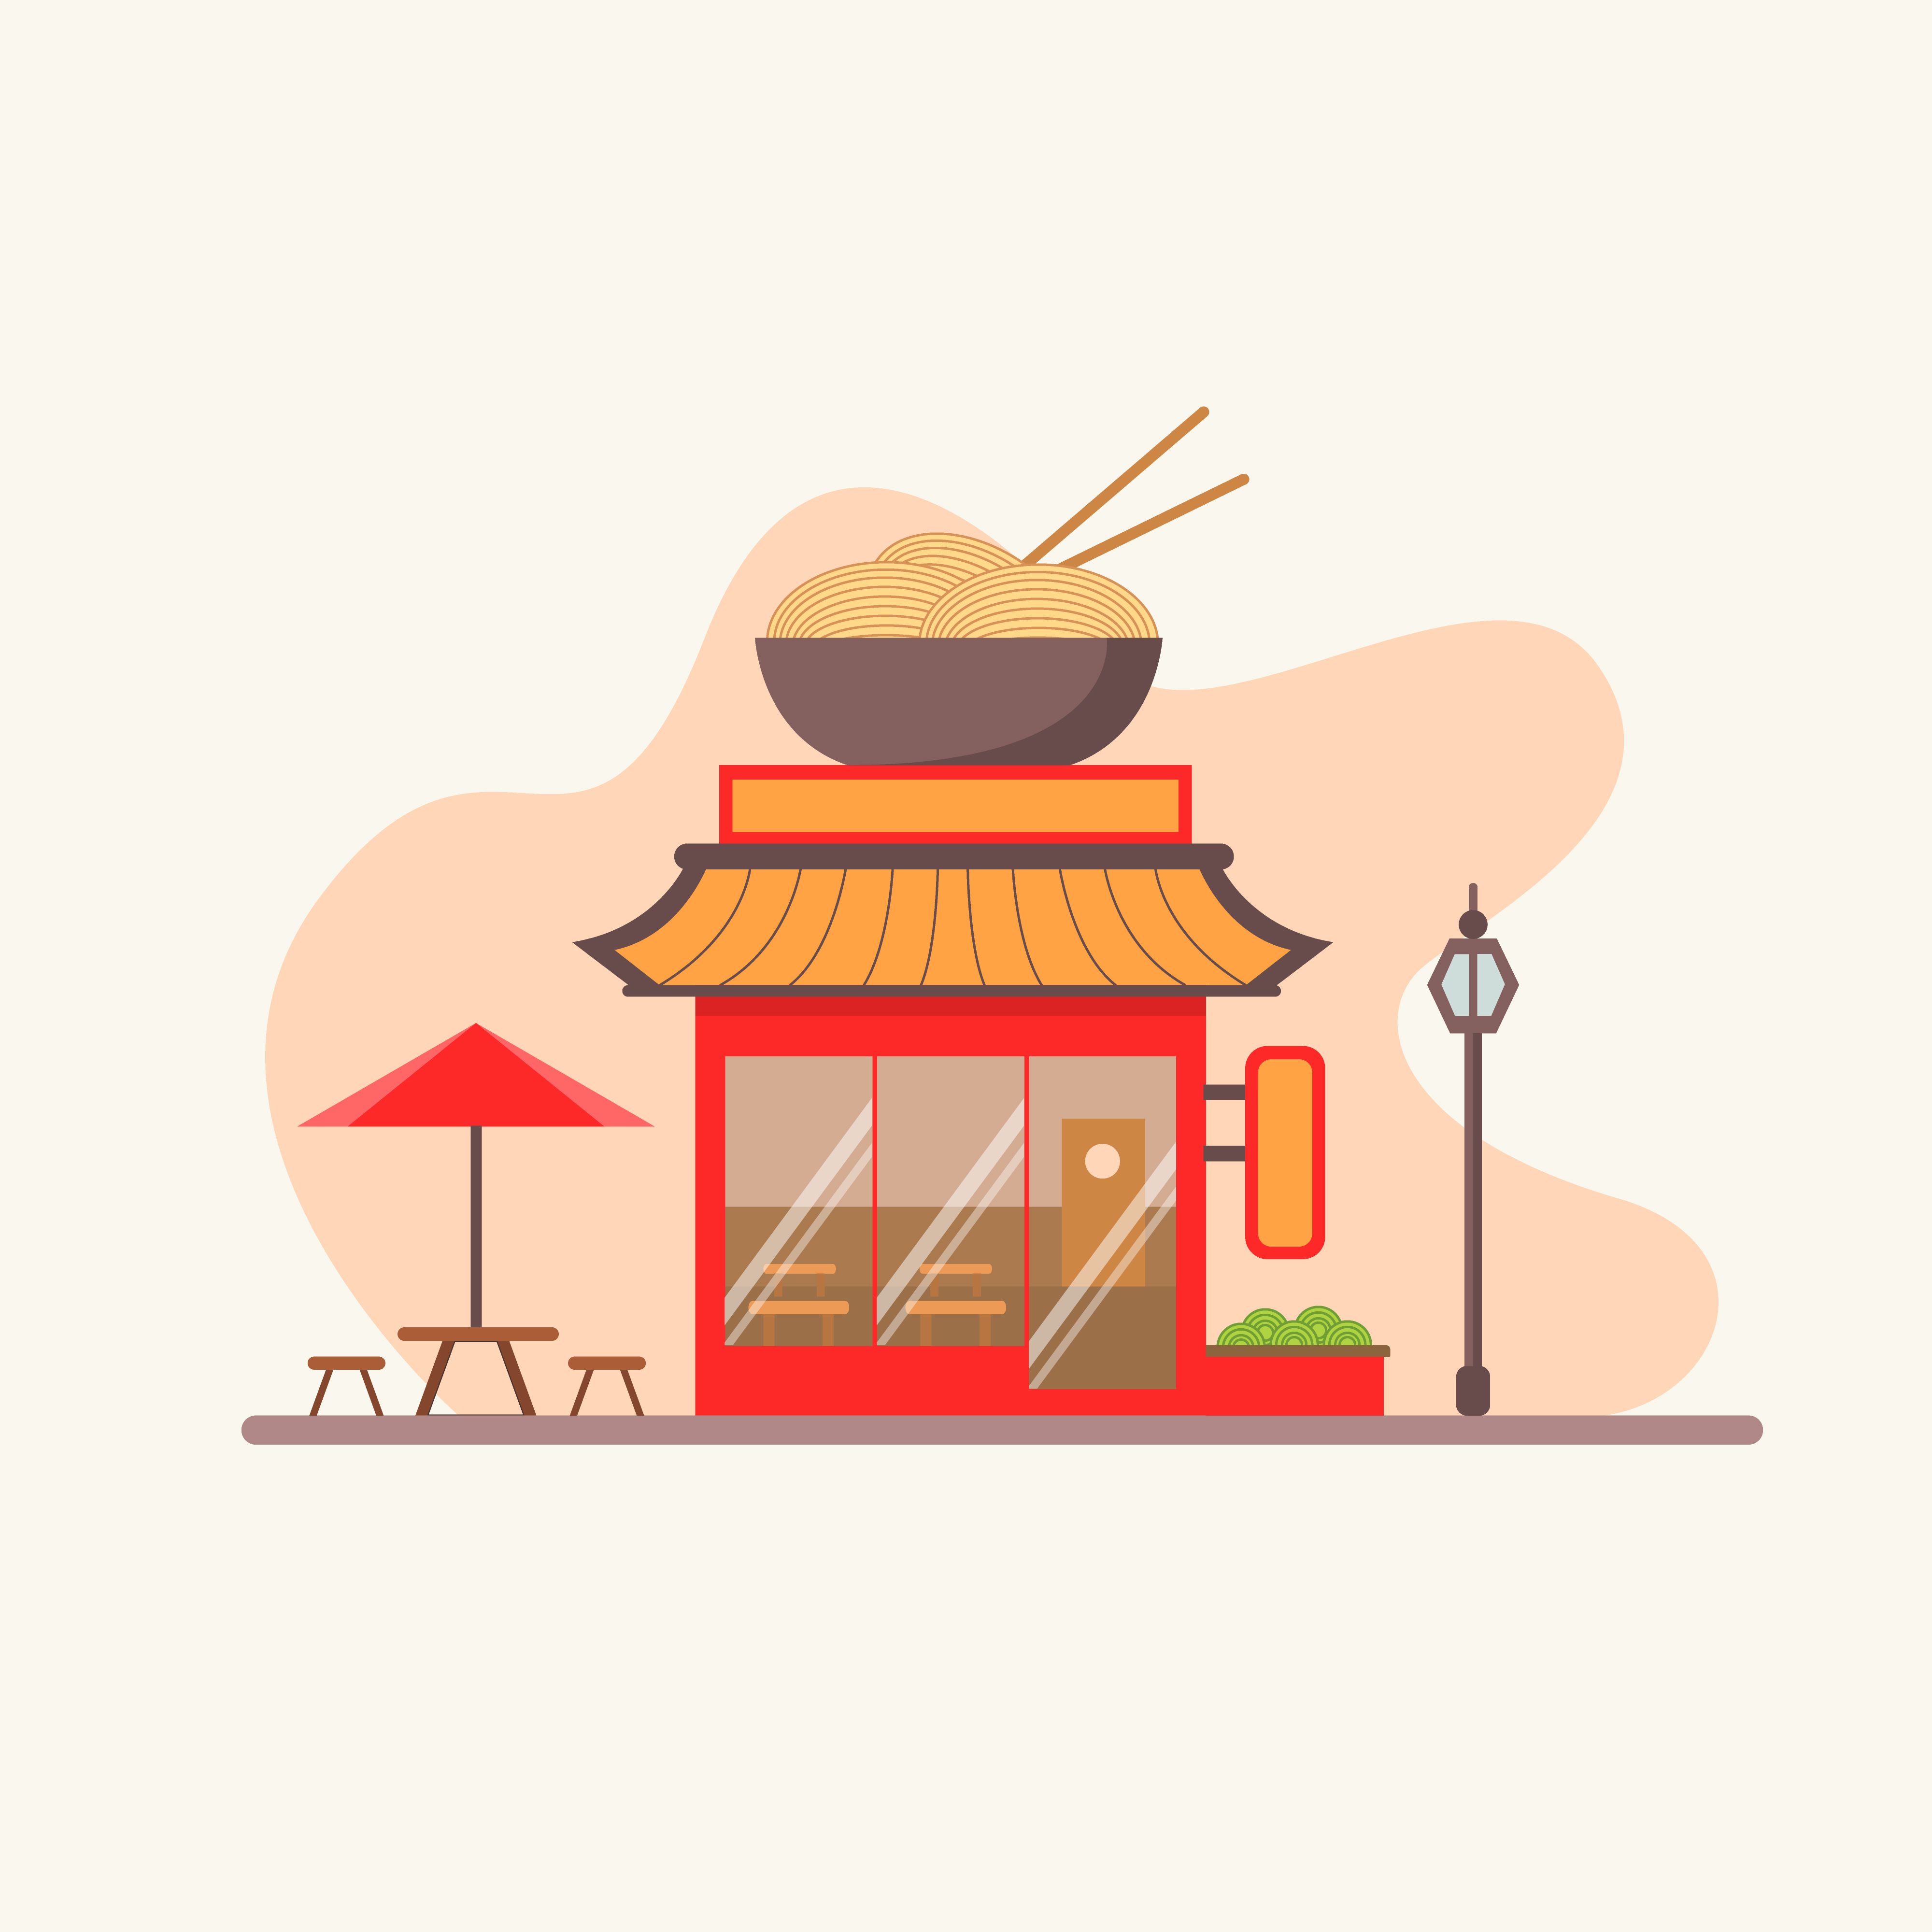 Chinese Restaurant With Outdoor Seating In The Street Download Free Vectors Clipart Graphics Vector Art